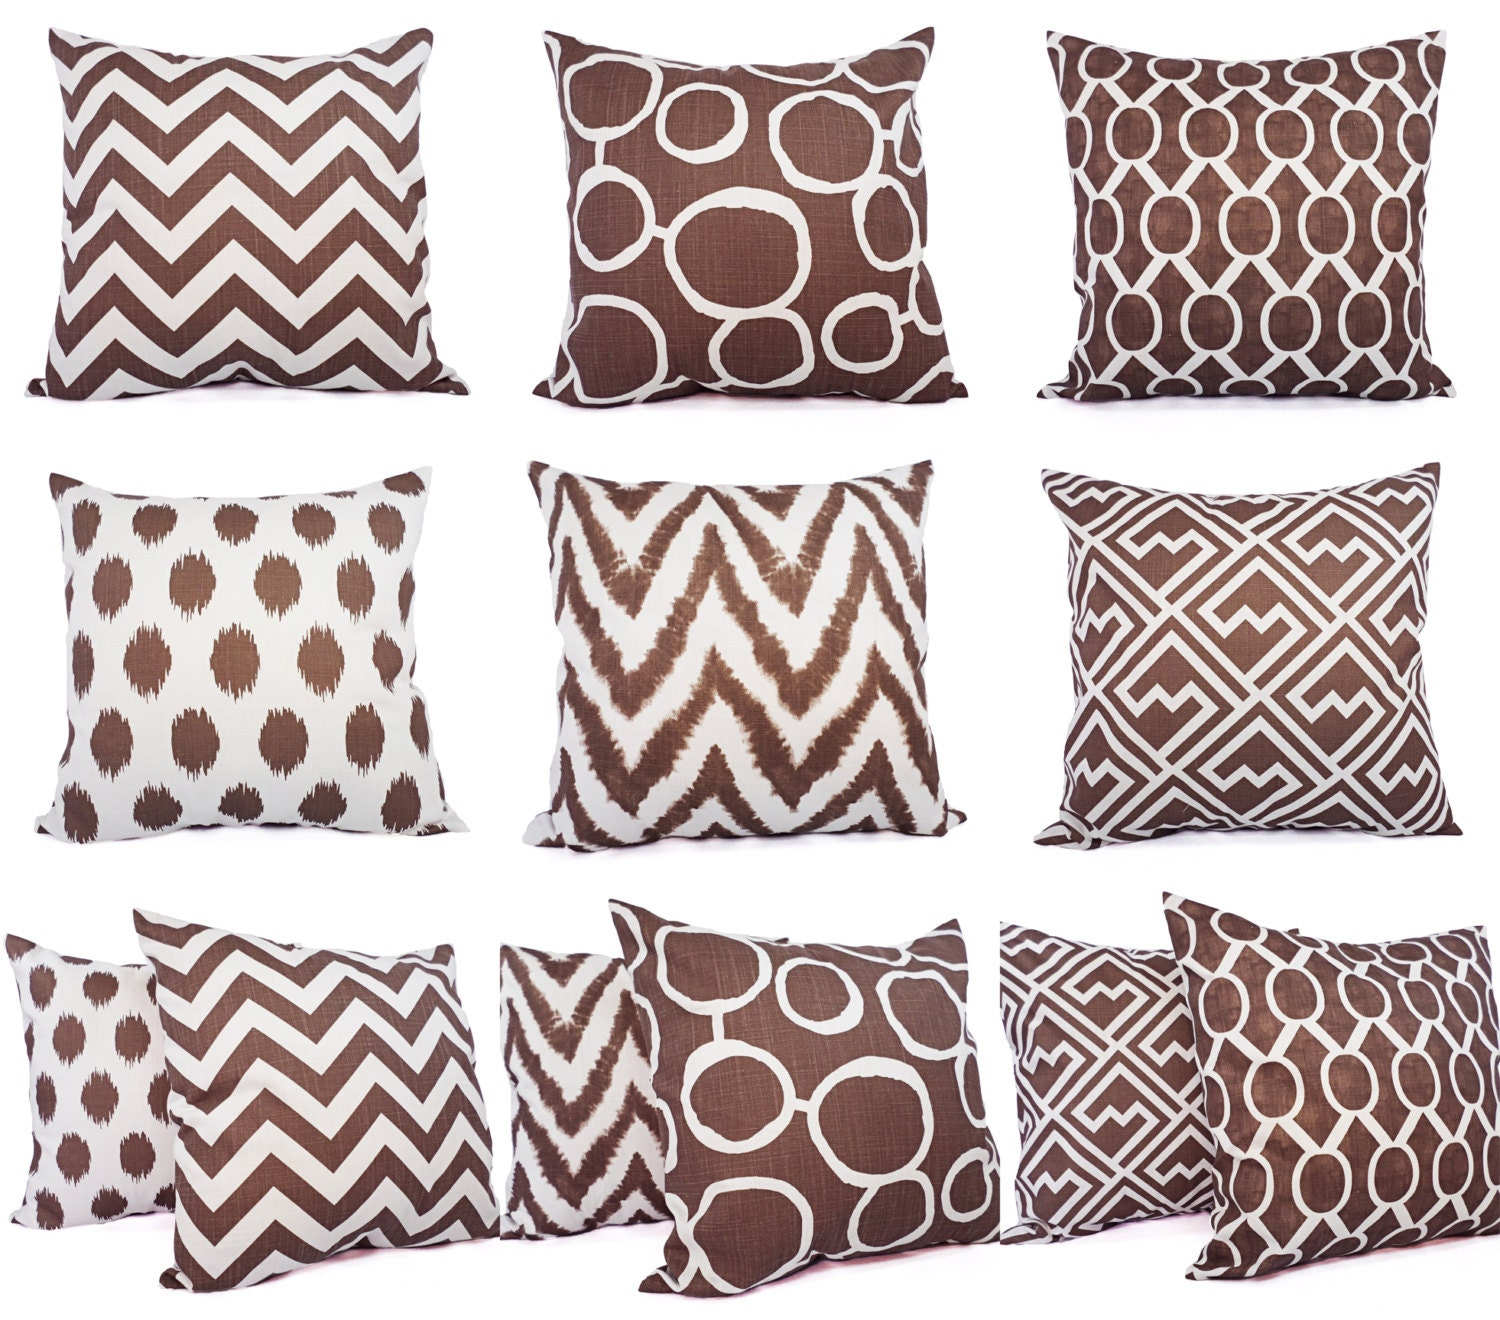 Brown Decorative Throw Pillows : Decorative Pillow Cover Brown Pillow Cover by CastawayCoveDecor